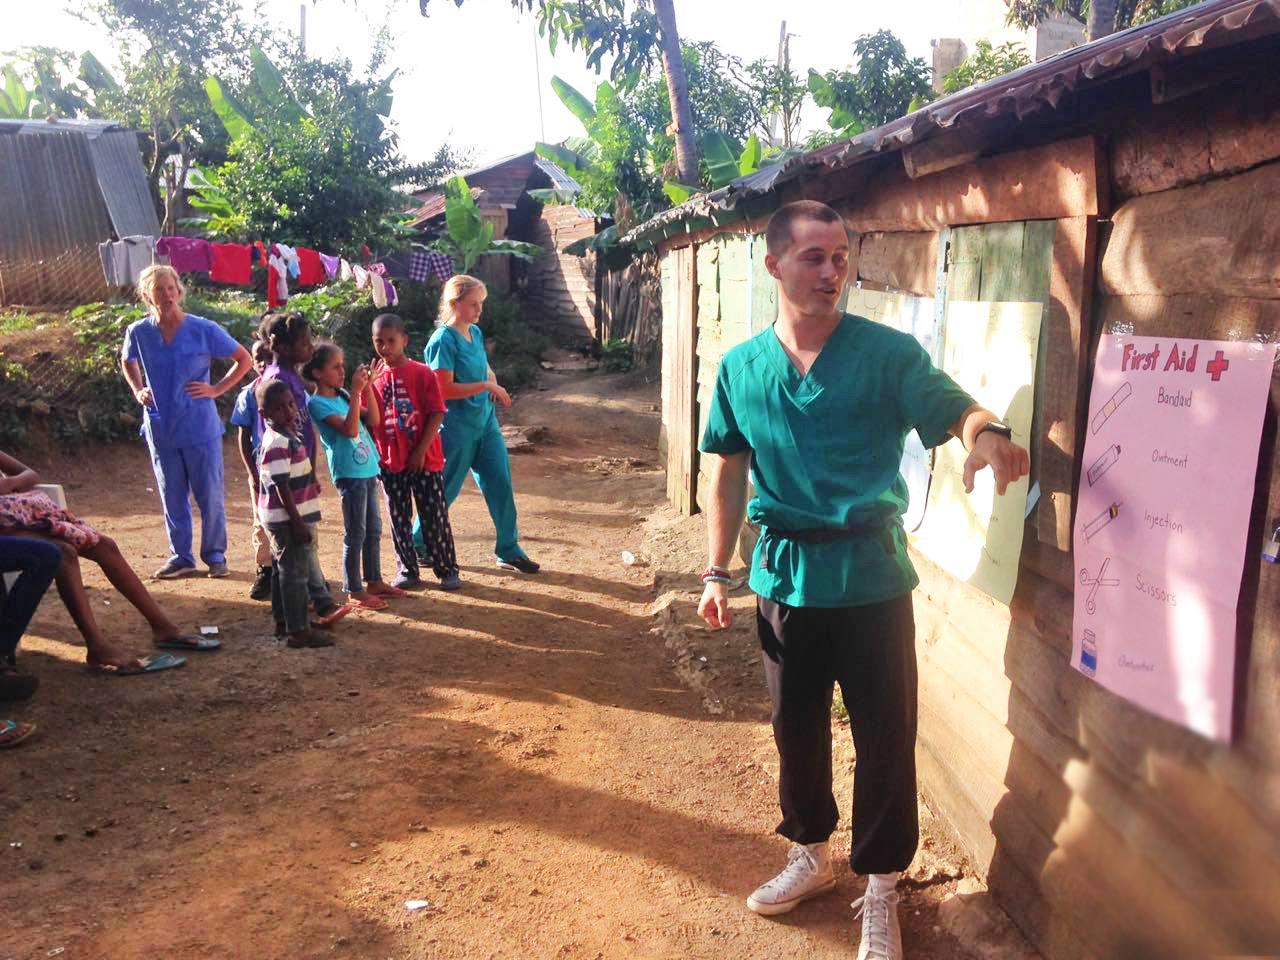 Community health education and first aid training in the Dominican Republic.